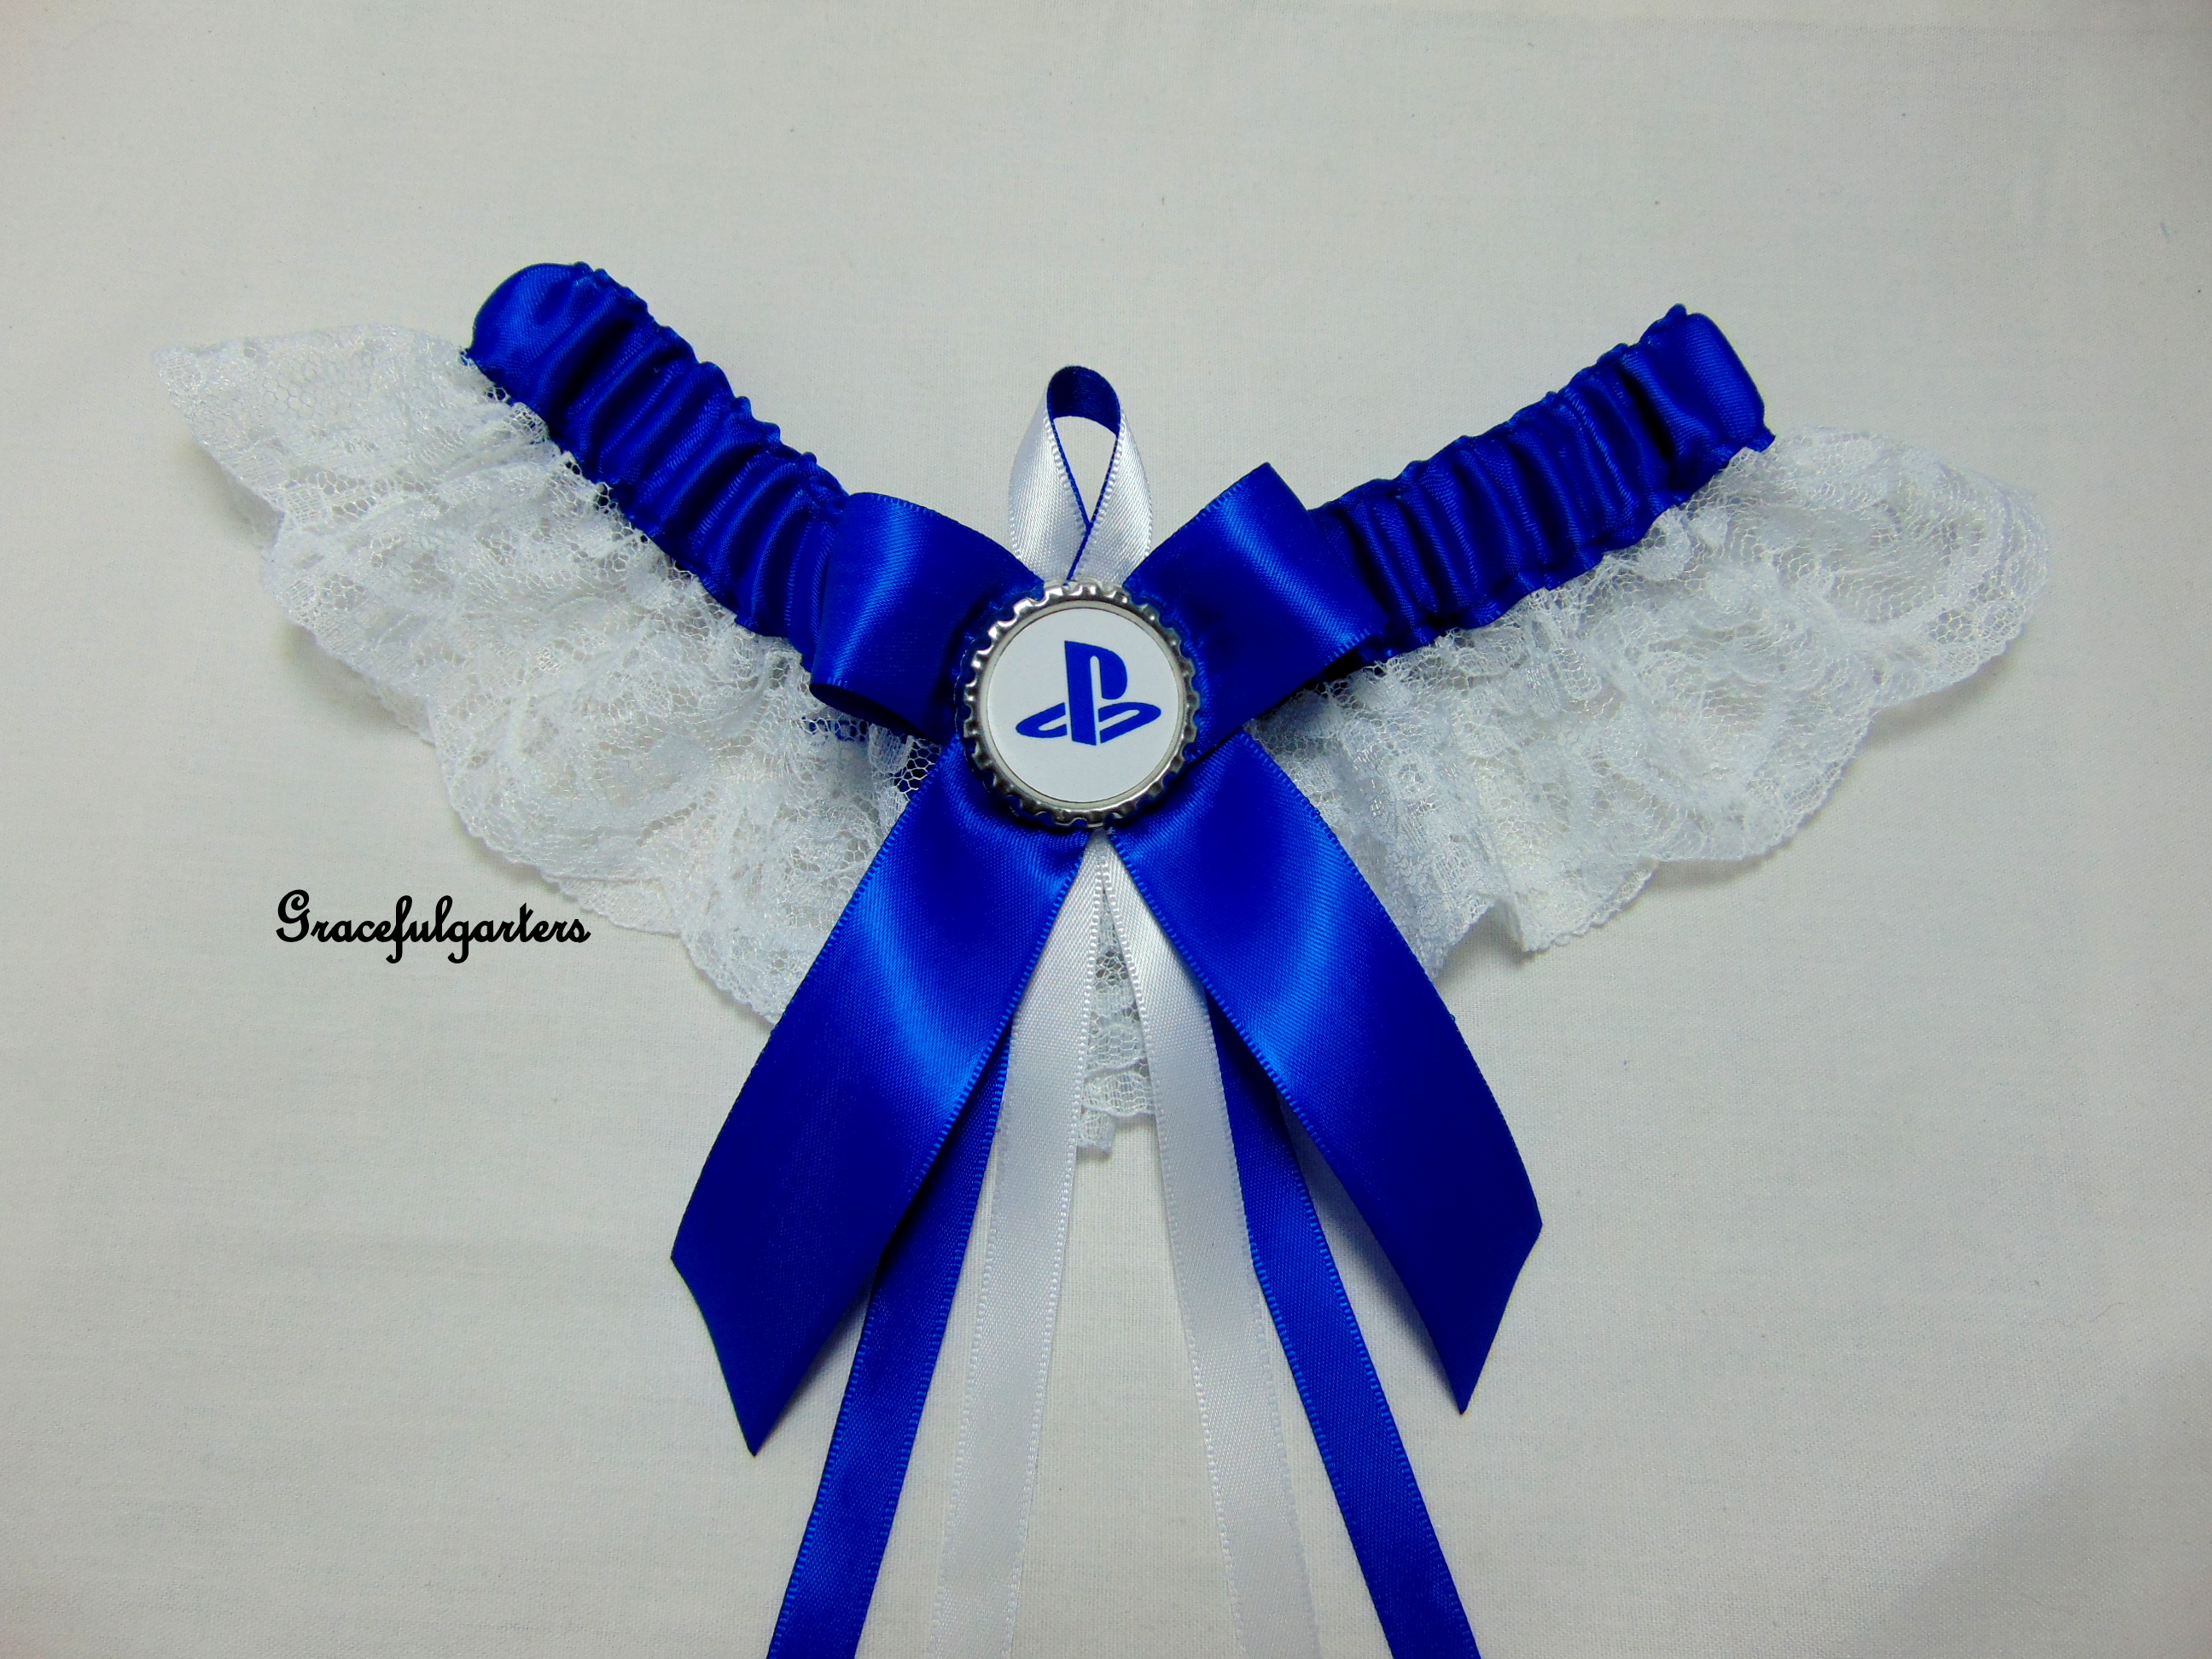 PlayStation Lace Bridal Wedding Garter Set